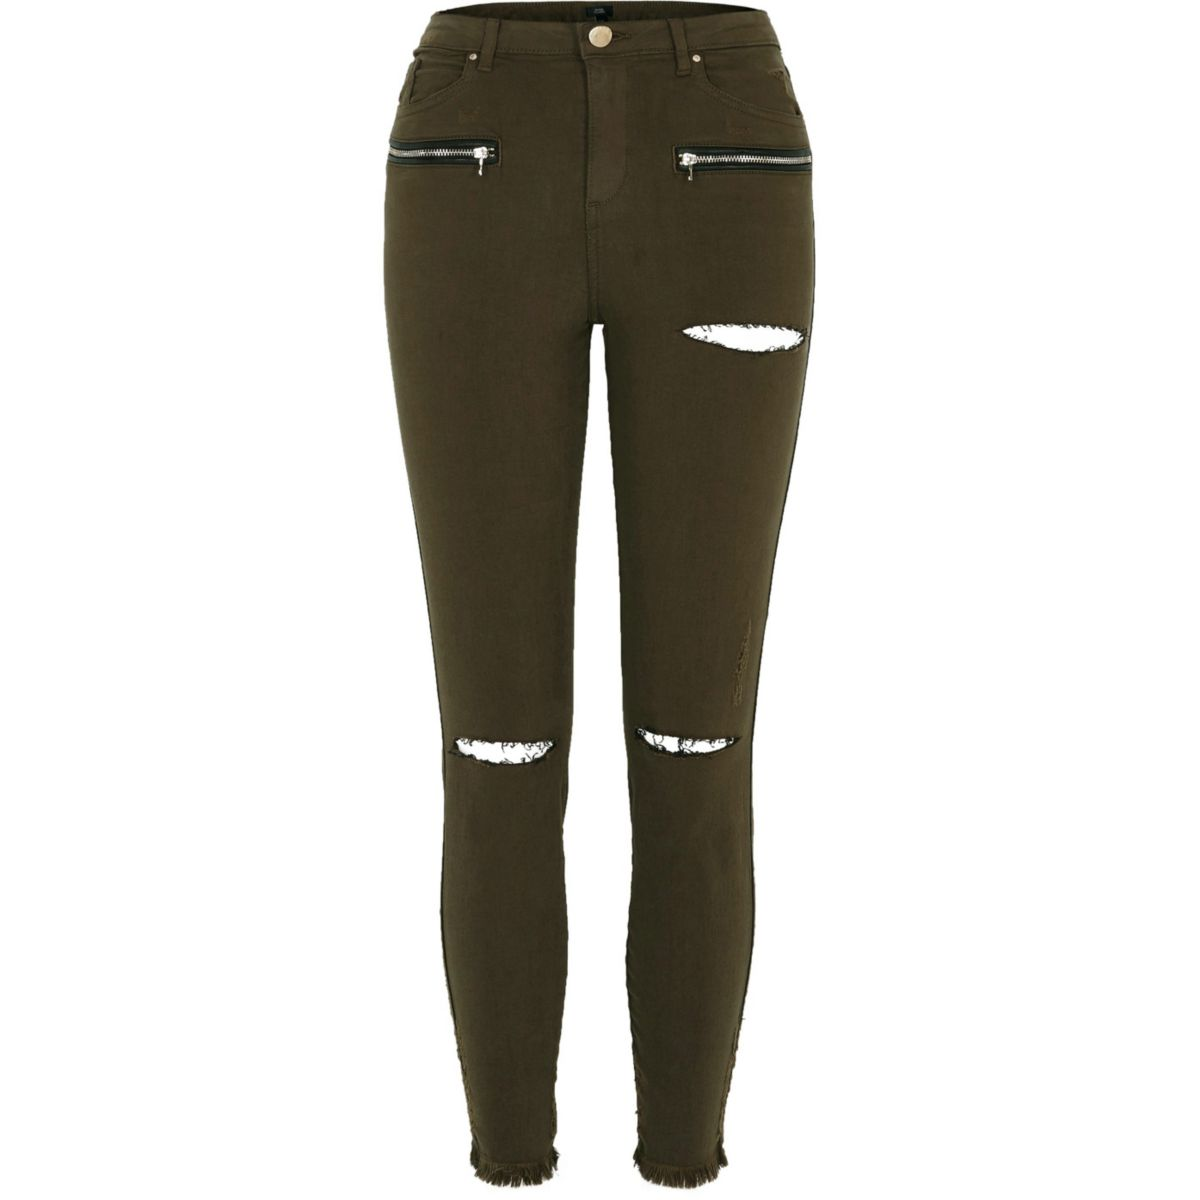 Khaki green ripped knee skinny fit trousers